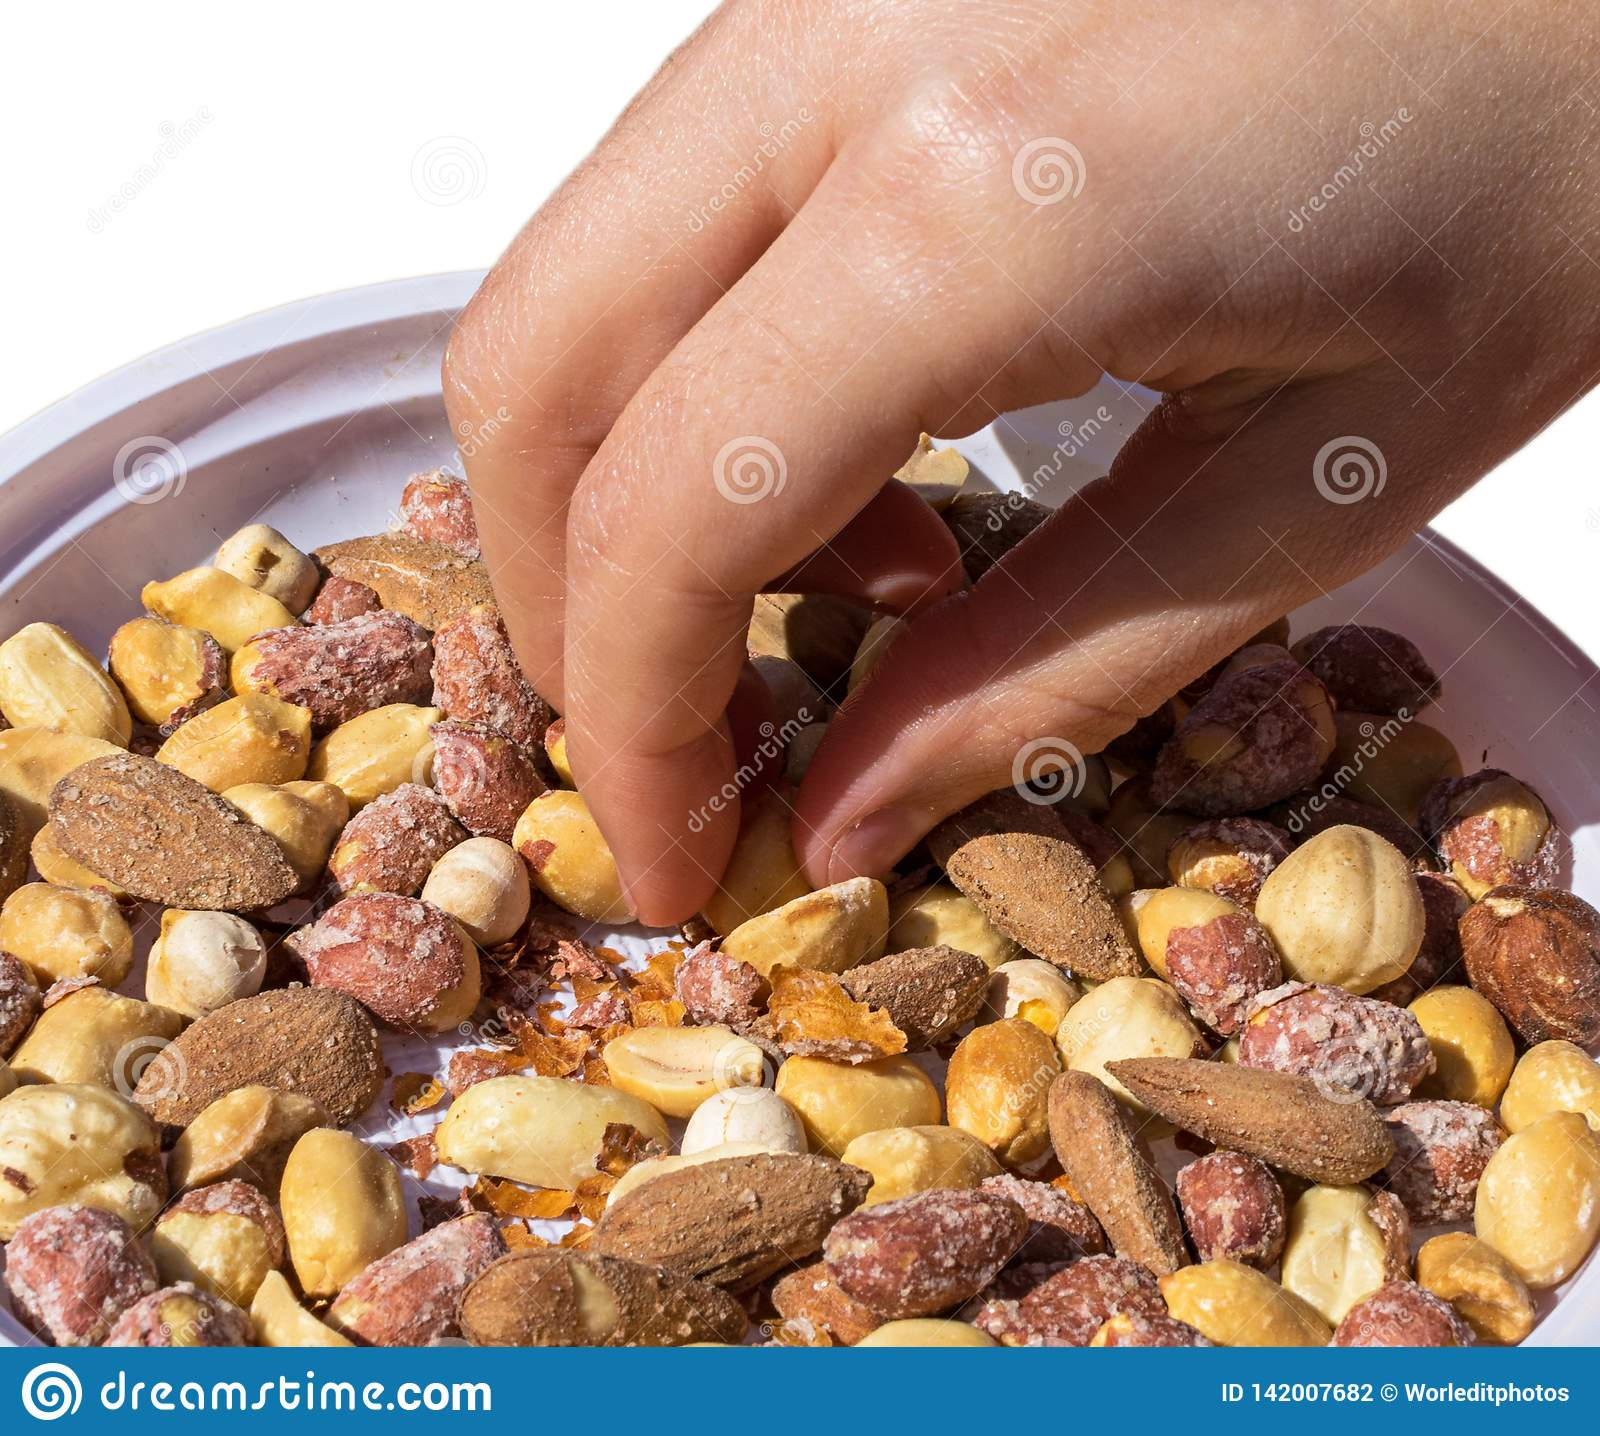 Hand taking some mixed snacks rice crackers, nuts and dried fruits